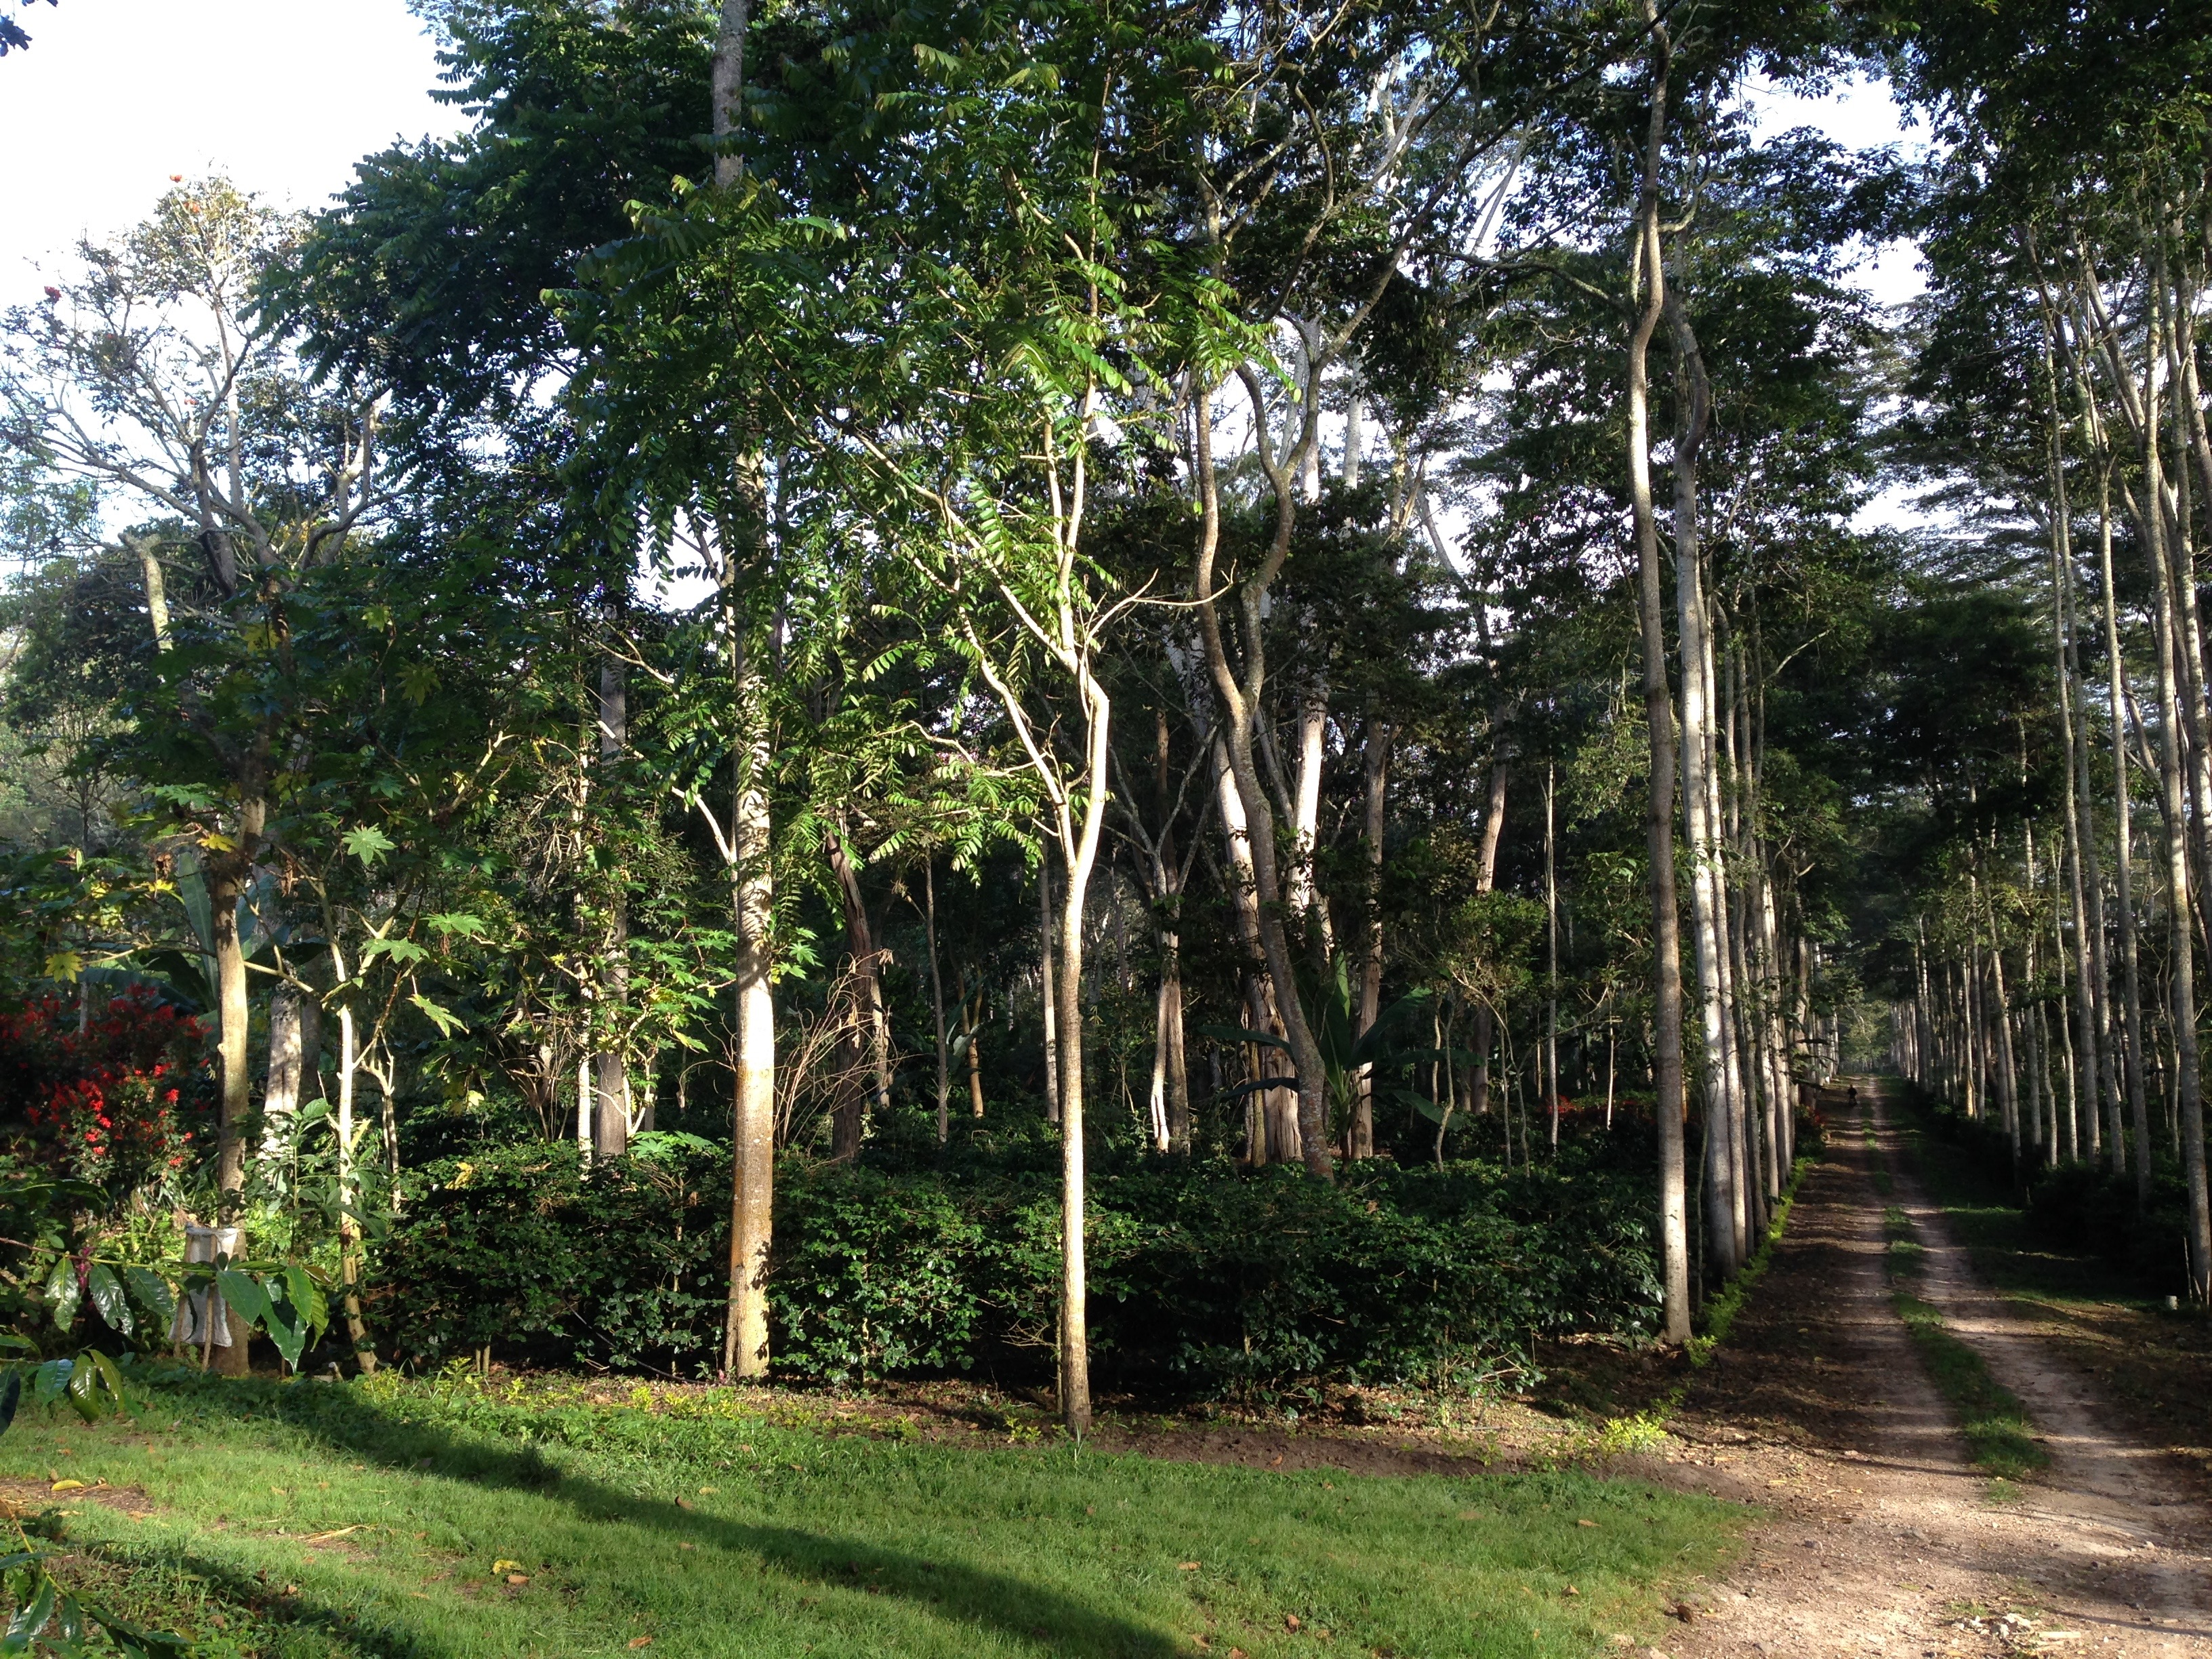 The El Roble shade coffee farm in Colombia. There are trees of different heights, shrubs, green grass and an unpaved road